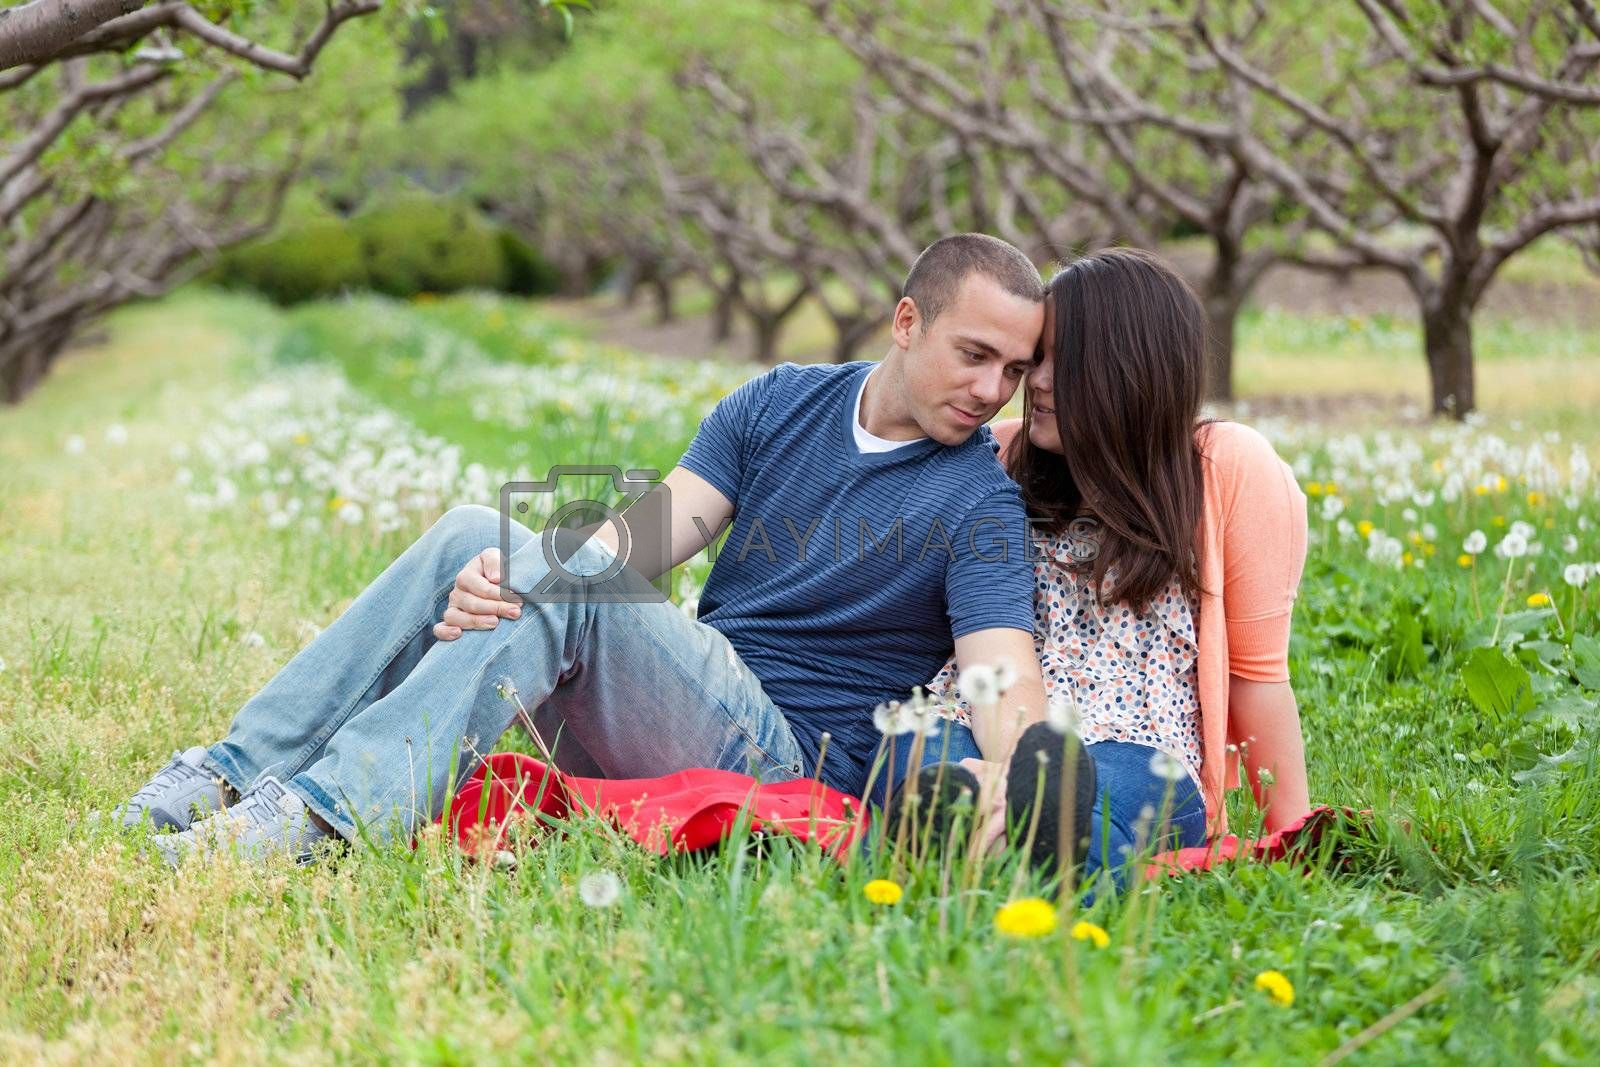 Young happy couple enjoying each others company outdoors on a picnic blanket in the middle of an apple orchard.